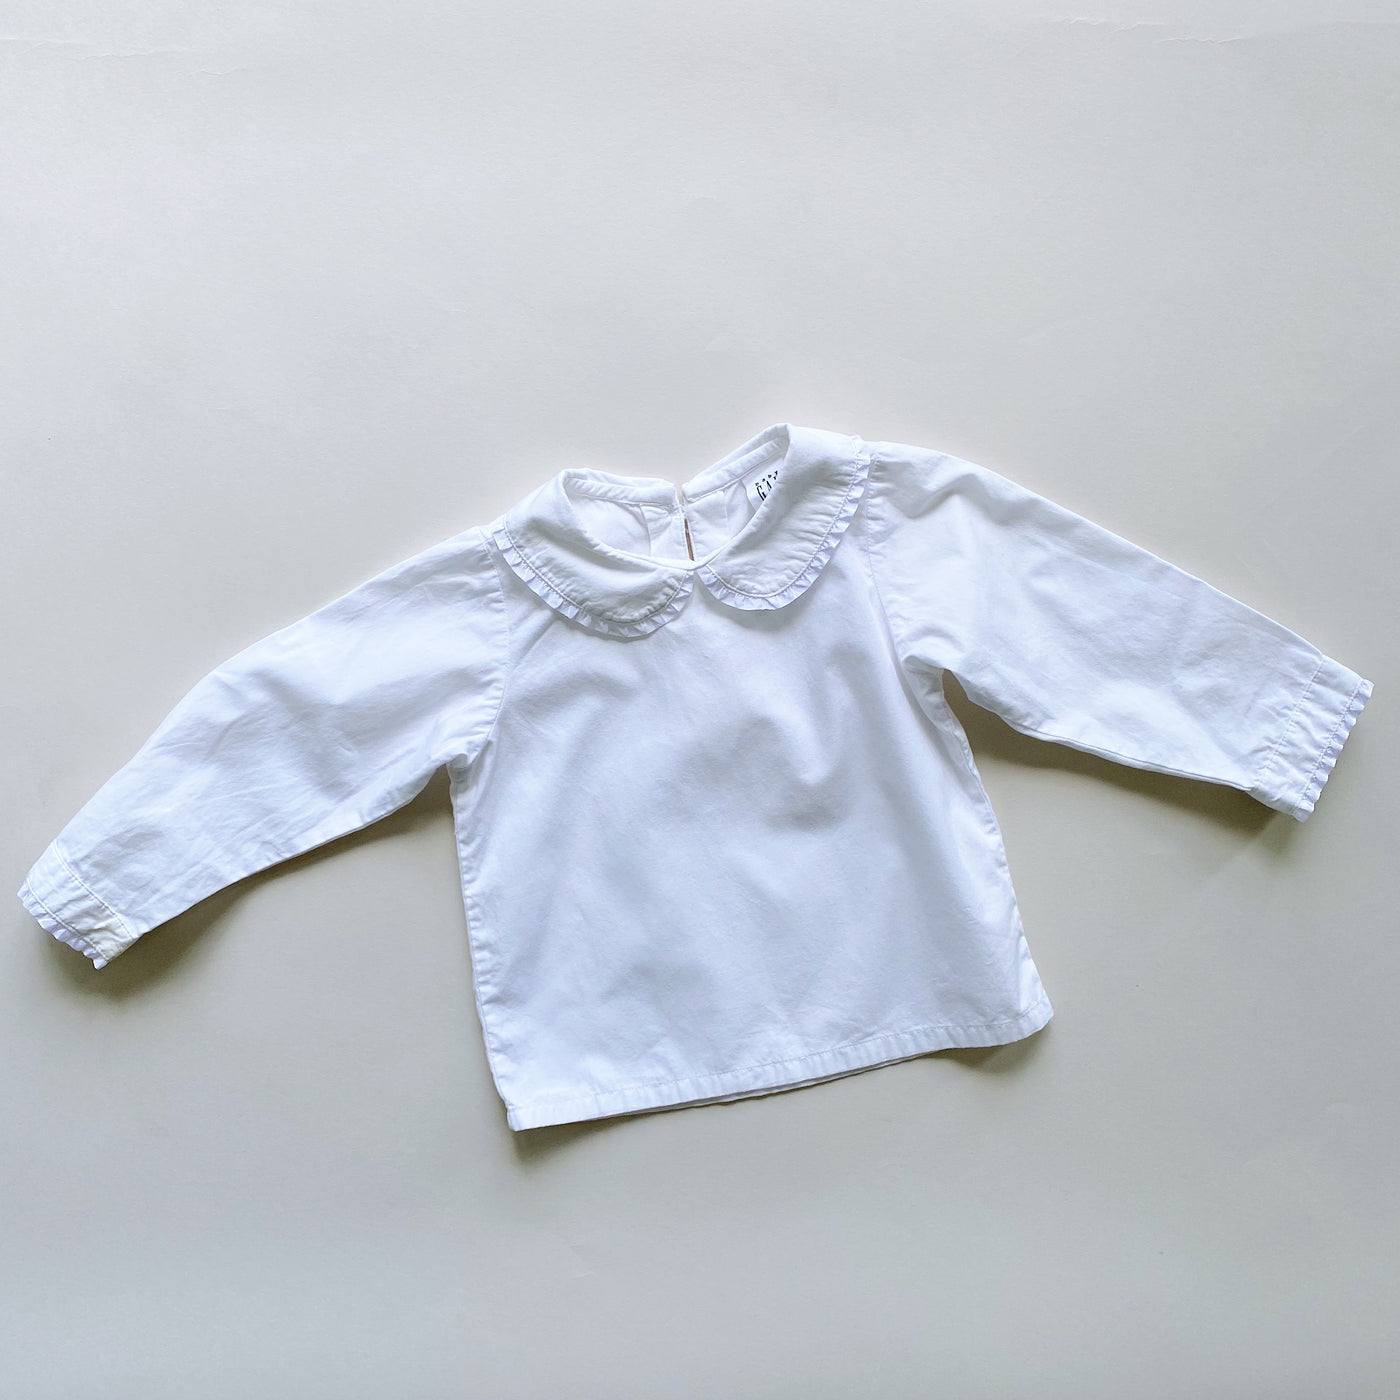 Baby Gap Simple White Top / Size 18-24M